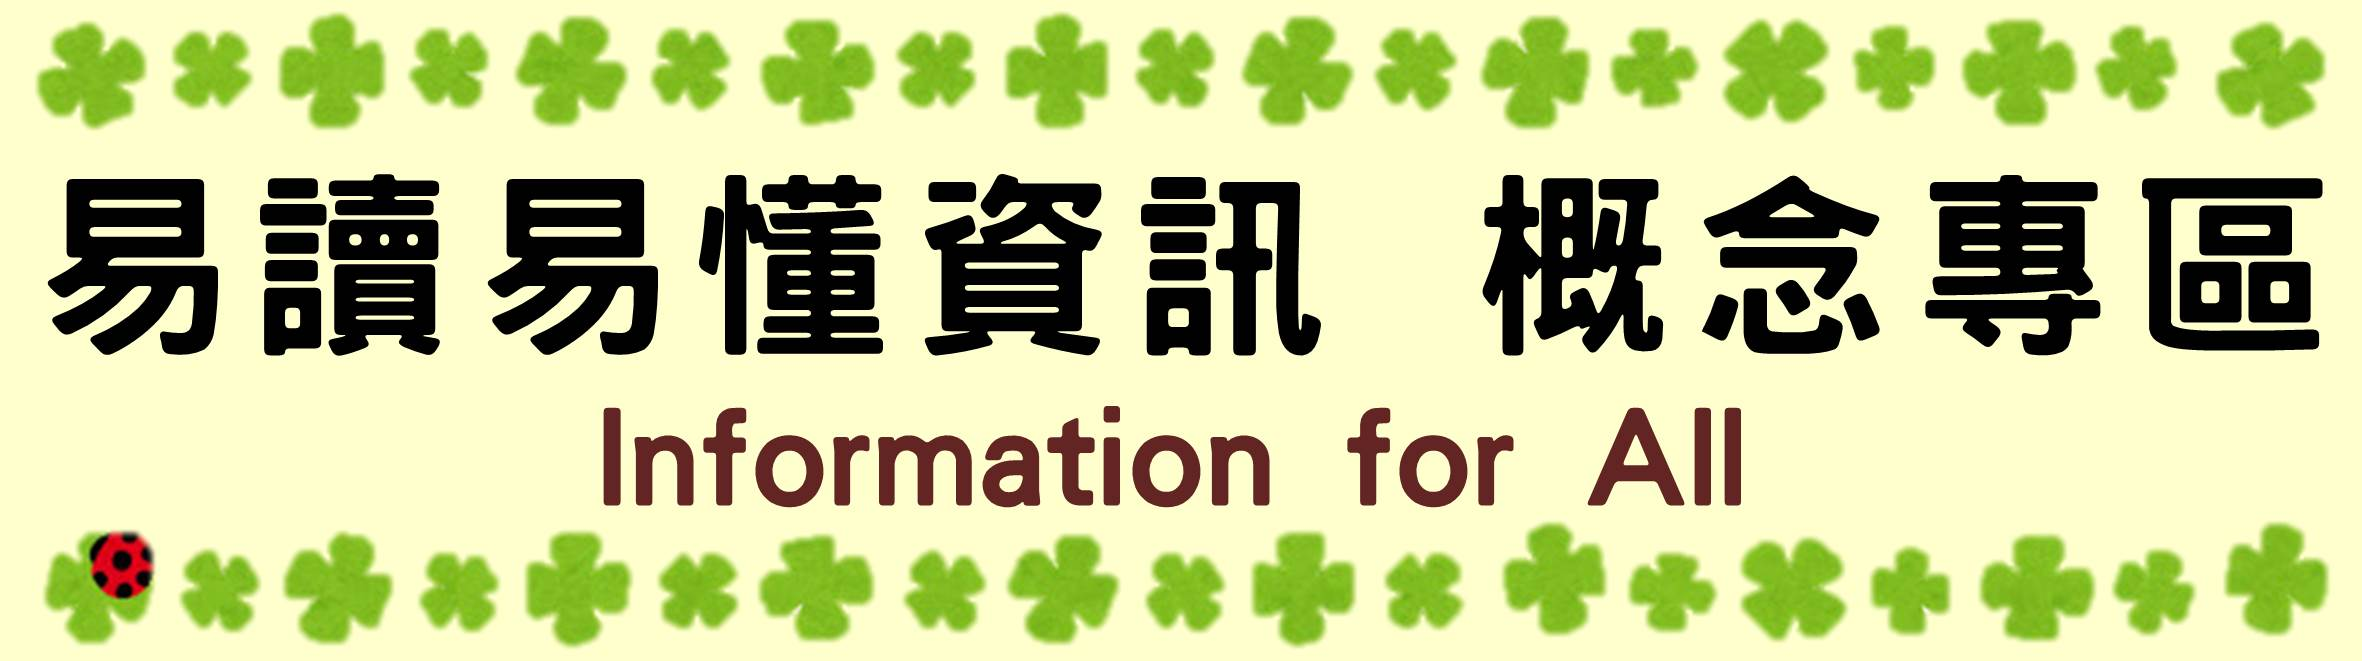 Information for all概念說明